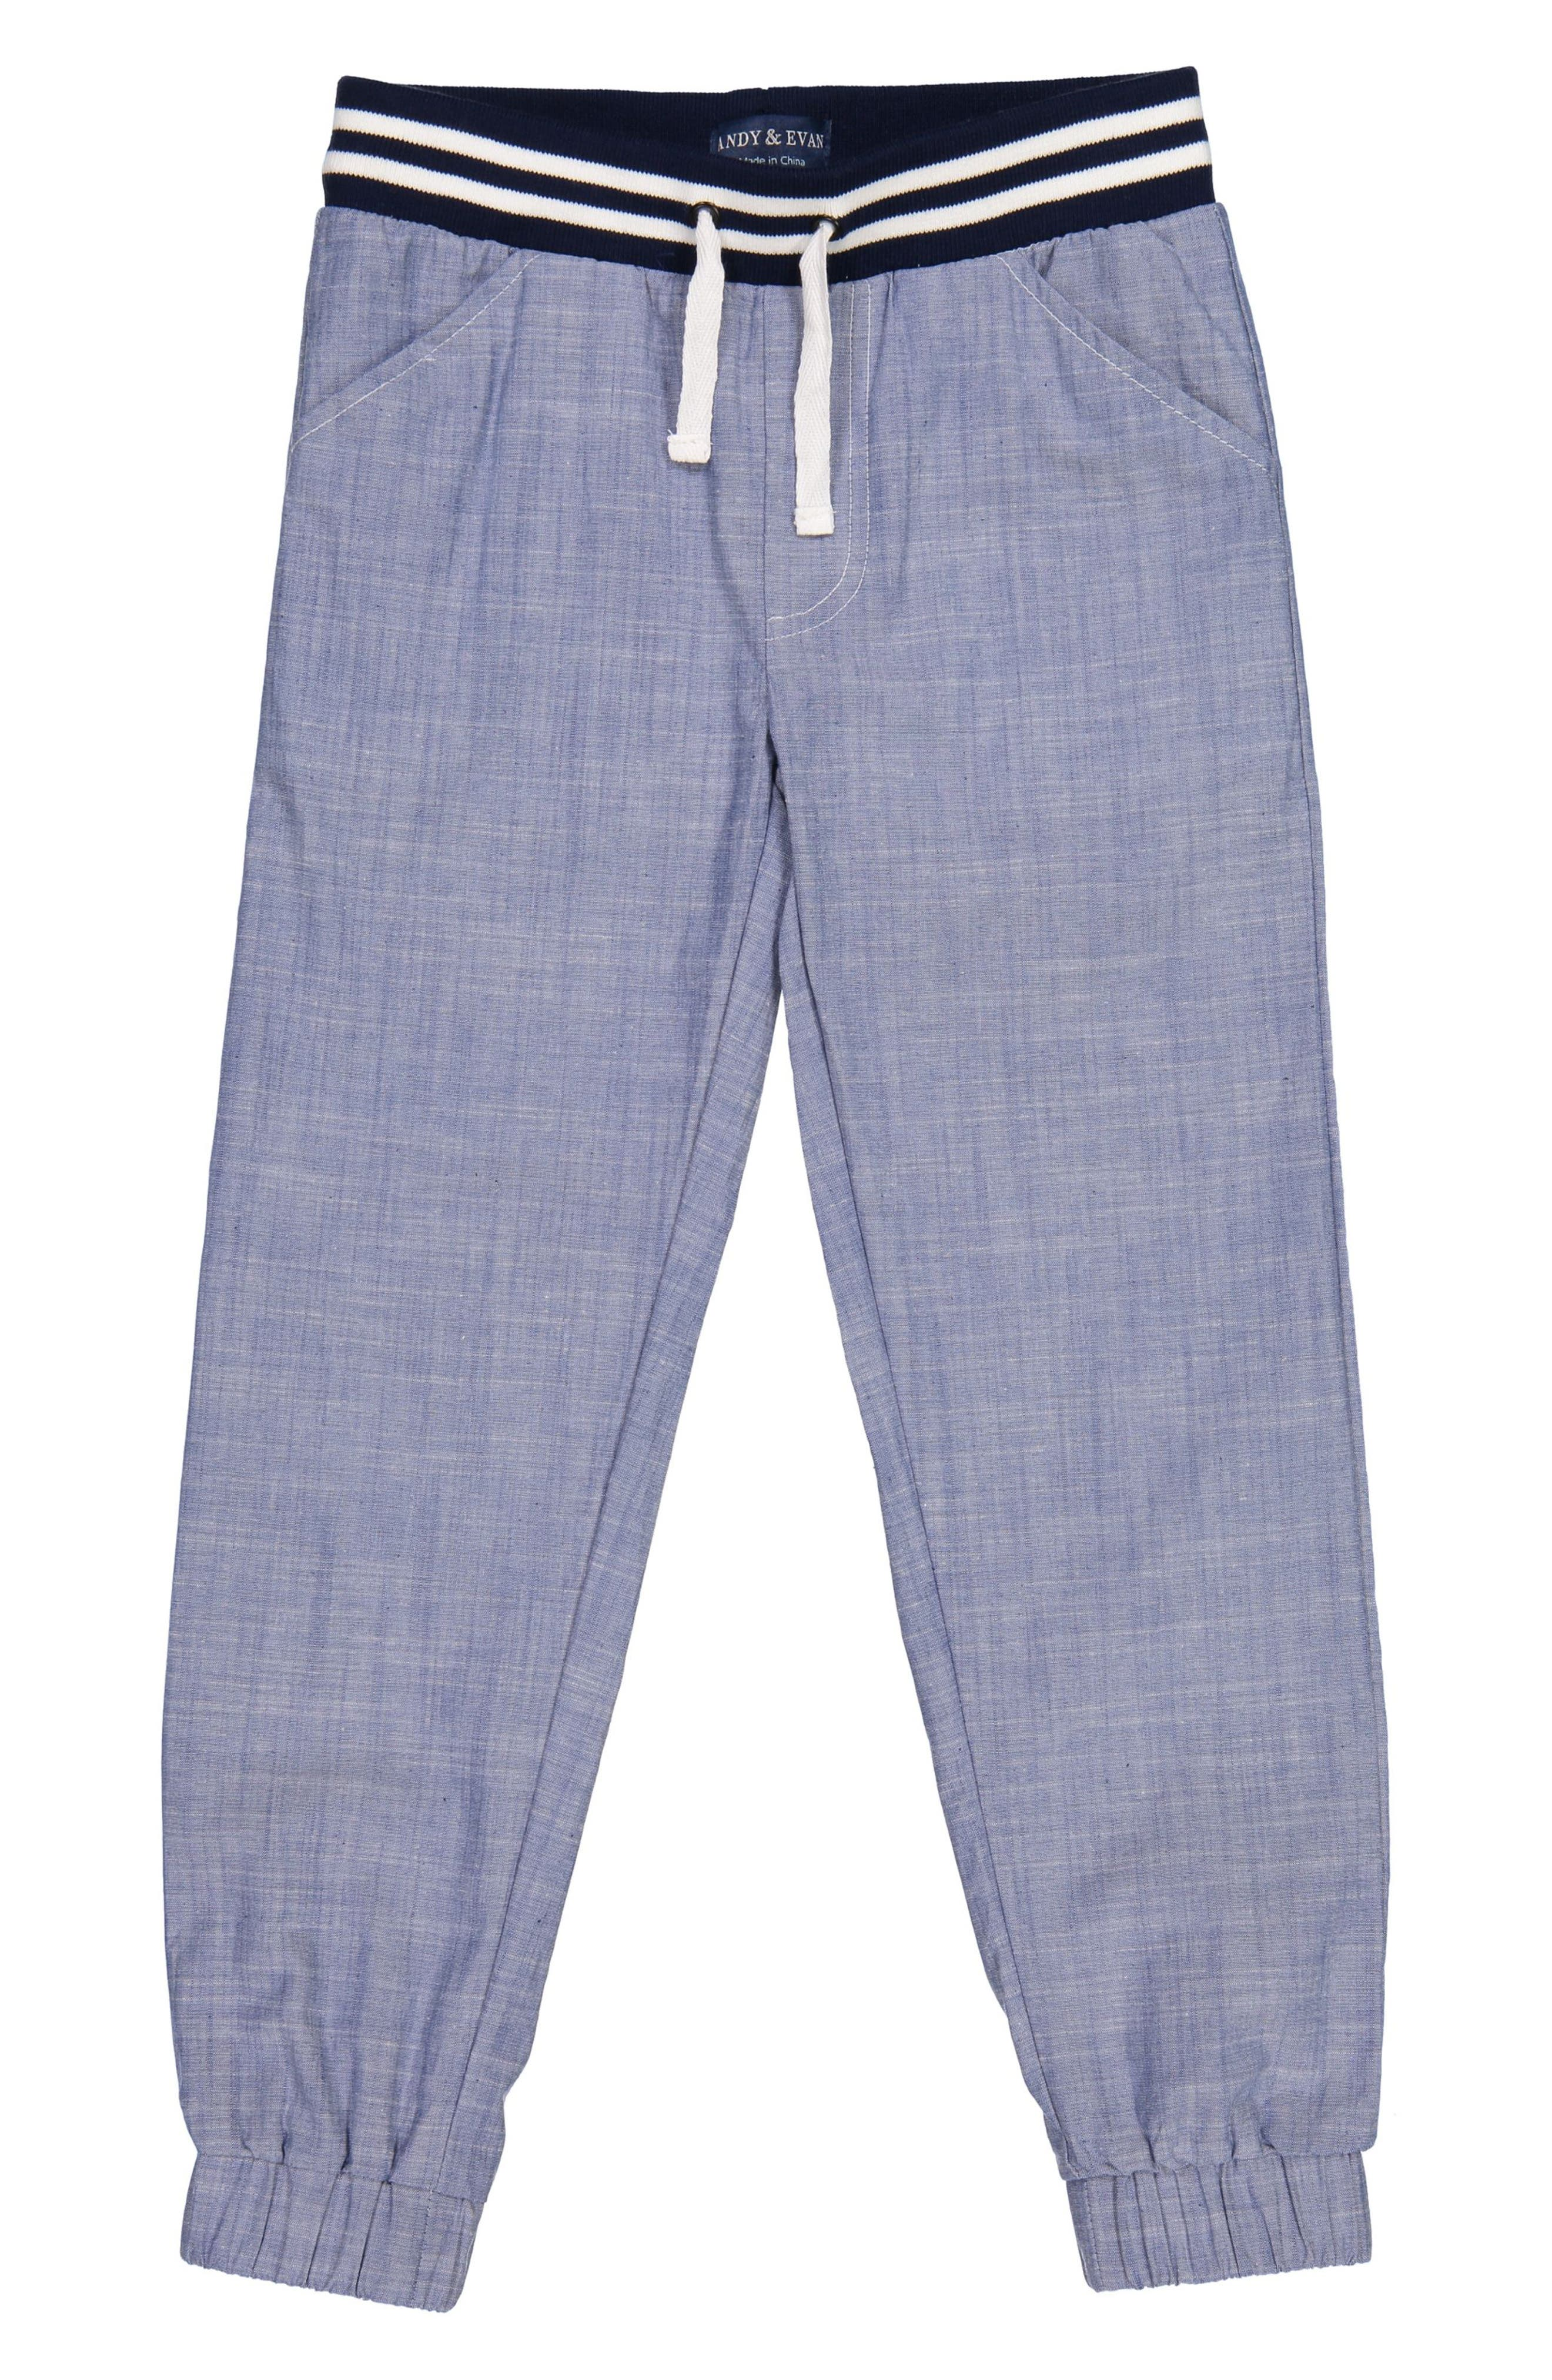 Alternate Image 1 Selected - Andy & Evan Chambray Jogger Pants (Toddler Boys & Little Boys)